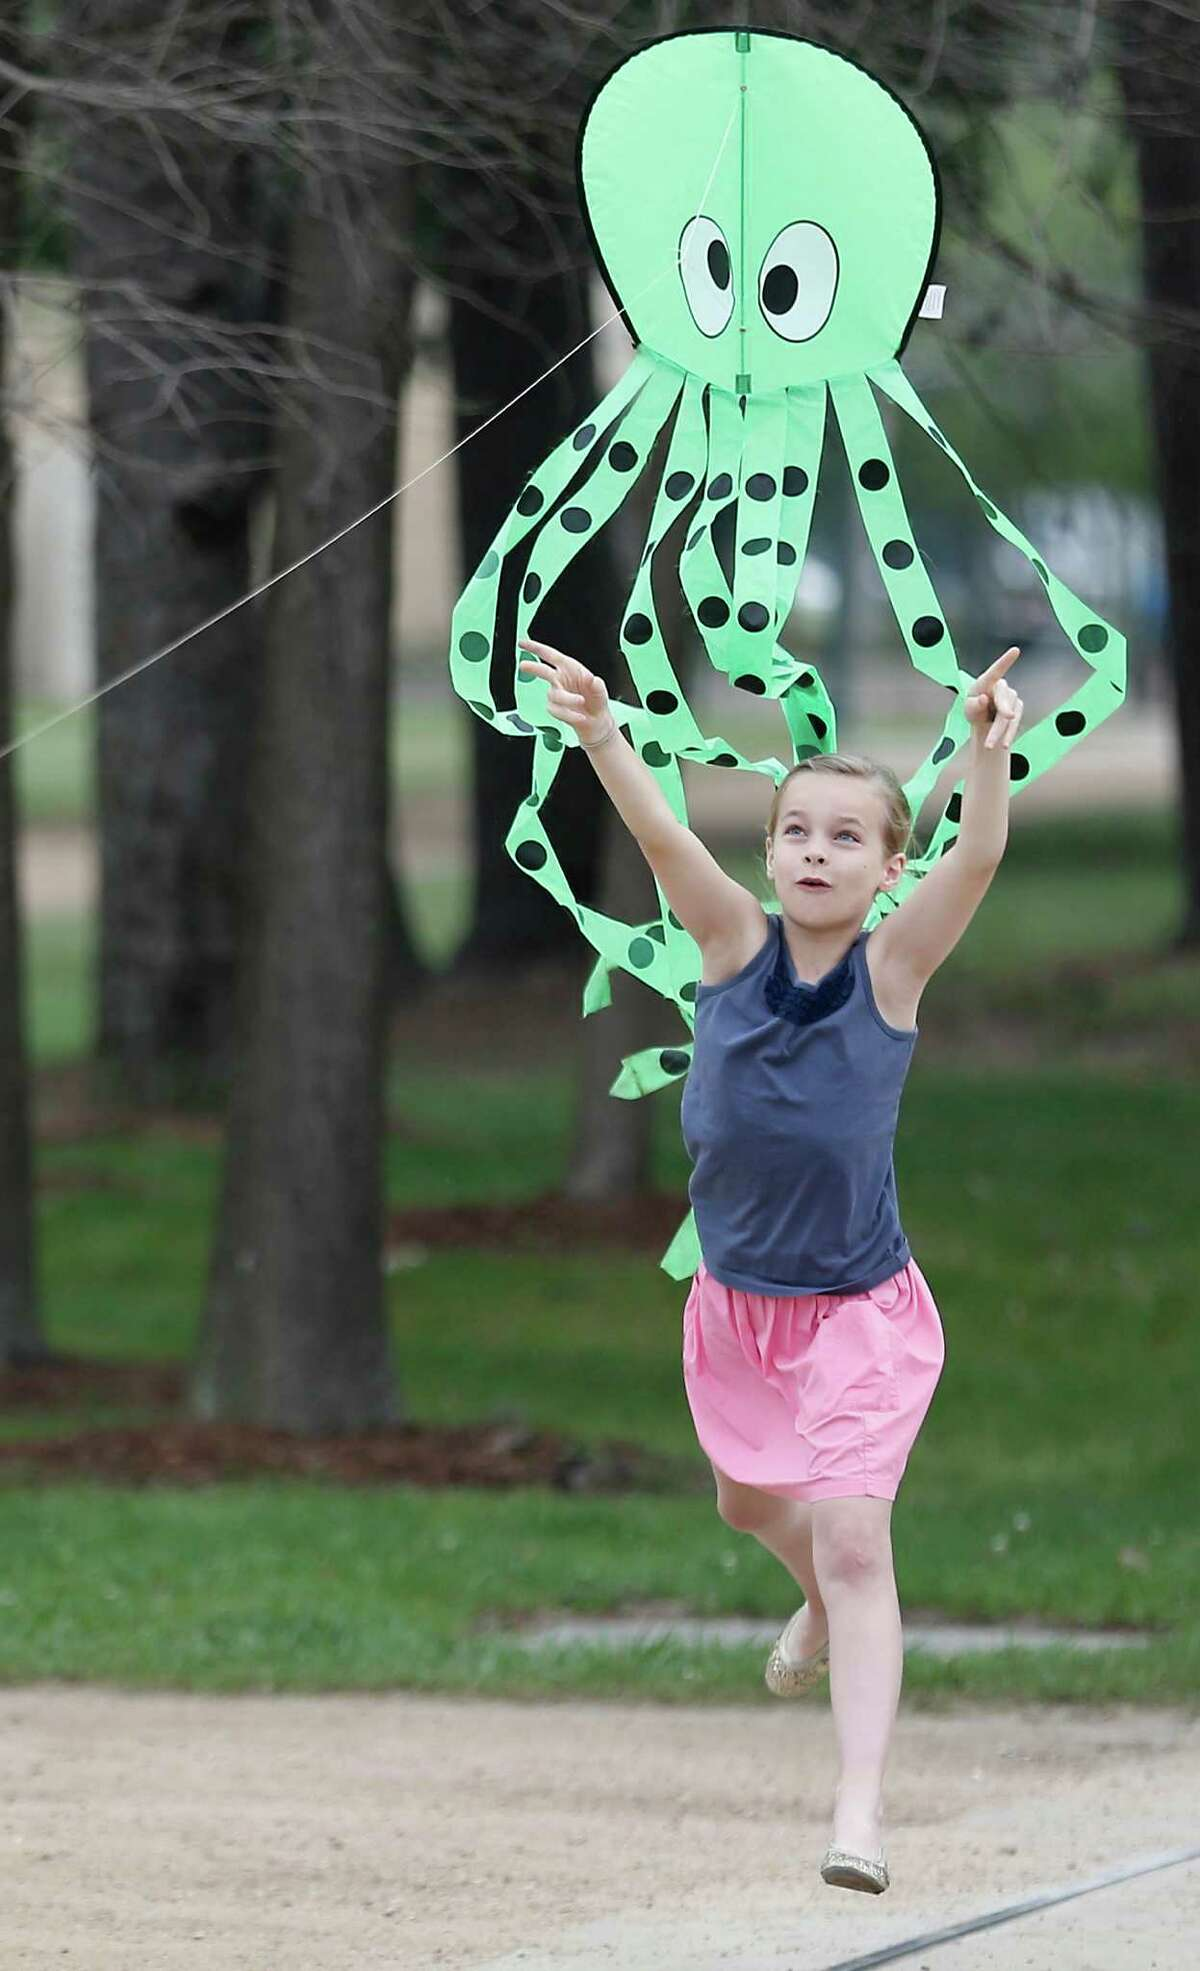 Mary Elizabeth Garvey , age 9, flies an octopus kite at Hermann Park on Monday, March 14, 2016 in Houston, TX. Mary Elizabeth was there to help promote the 3rd Annual Hermann Park Conservatory Kite Festival to be held Sunday April 3, 2016 from 10 am to 5 pm. ( Photo by Thomas B. Shea / For the Chronicle)